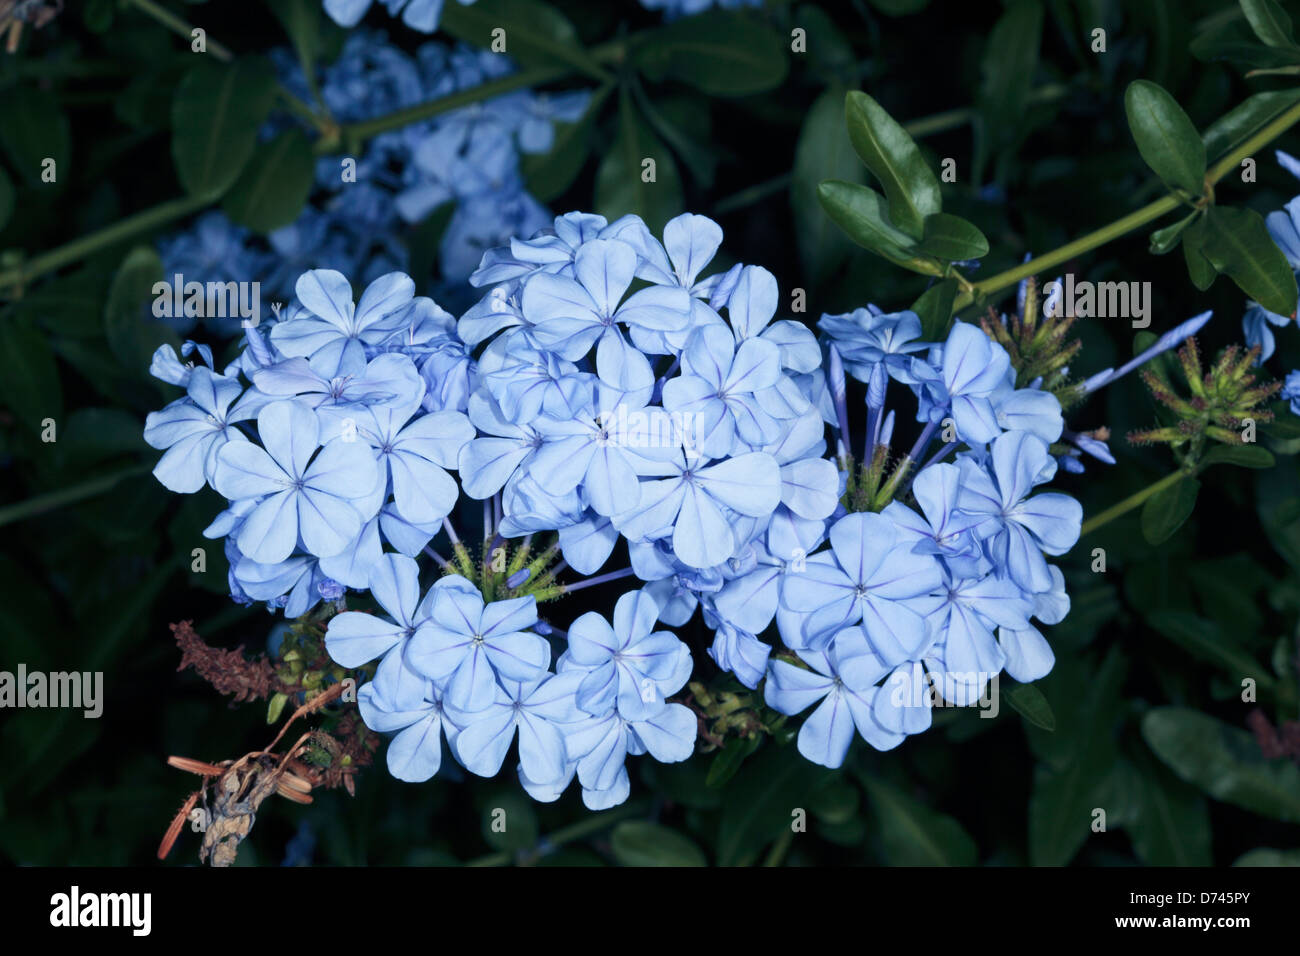 Plumbago capensis FREE P//P WHEN BUY 3 OR MORE ITEMS - 1 PLANT auriculata